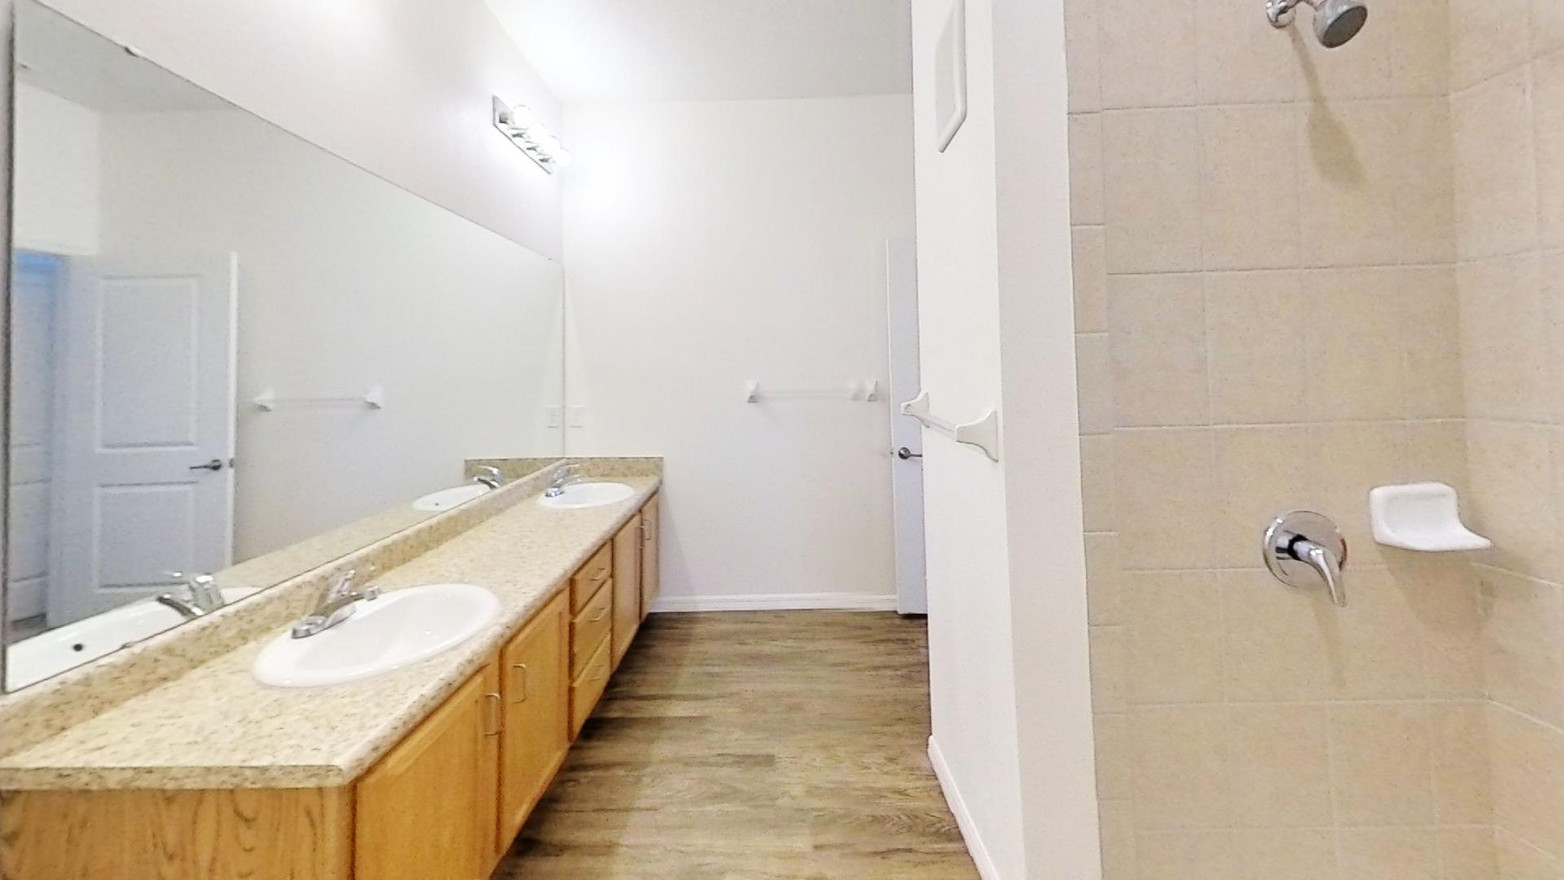 Photo of bathroom and shower